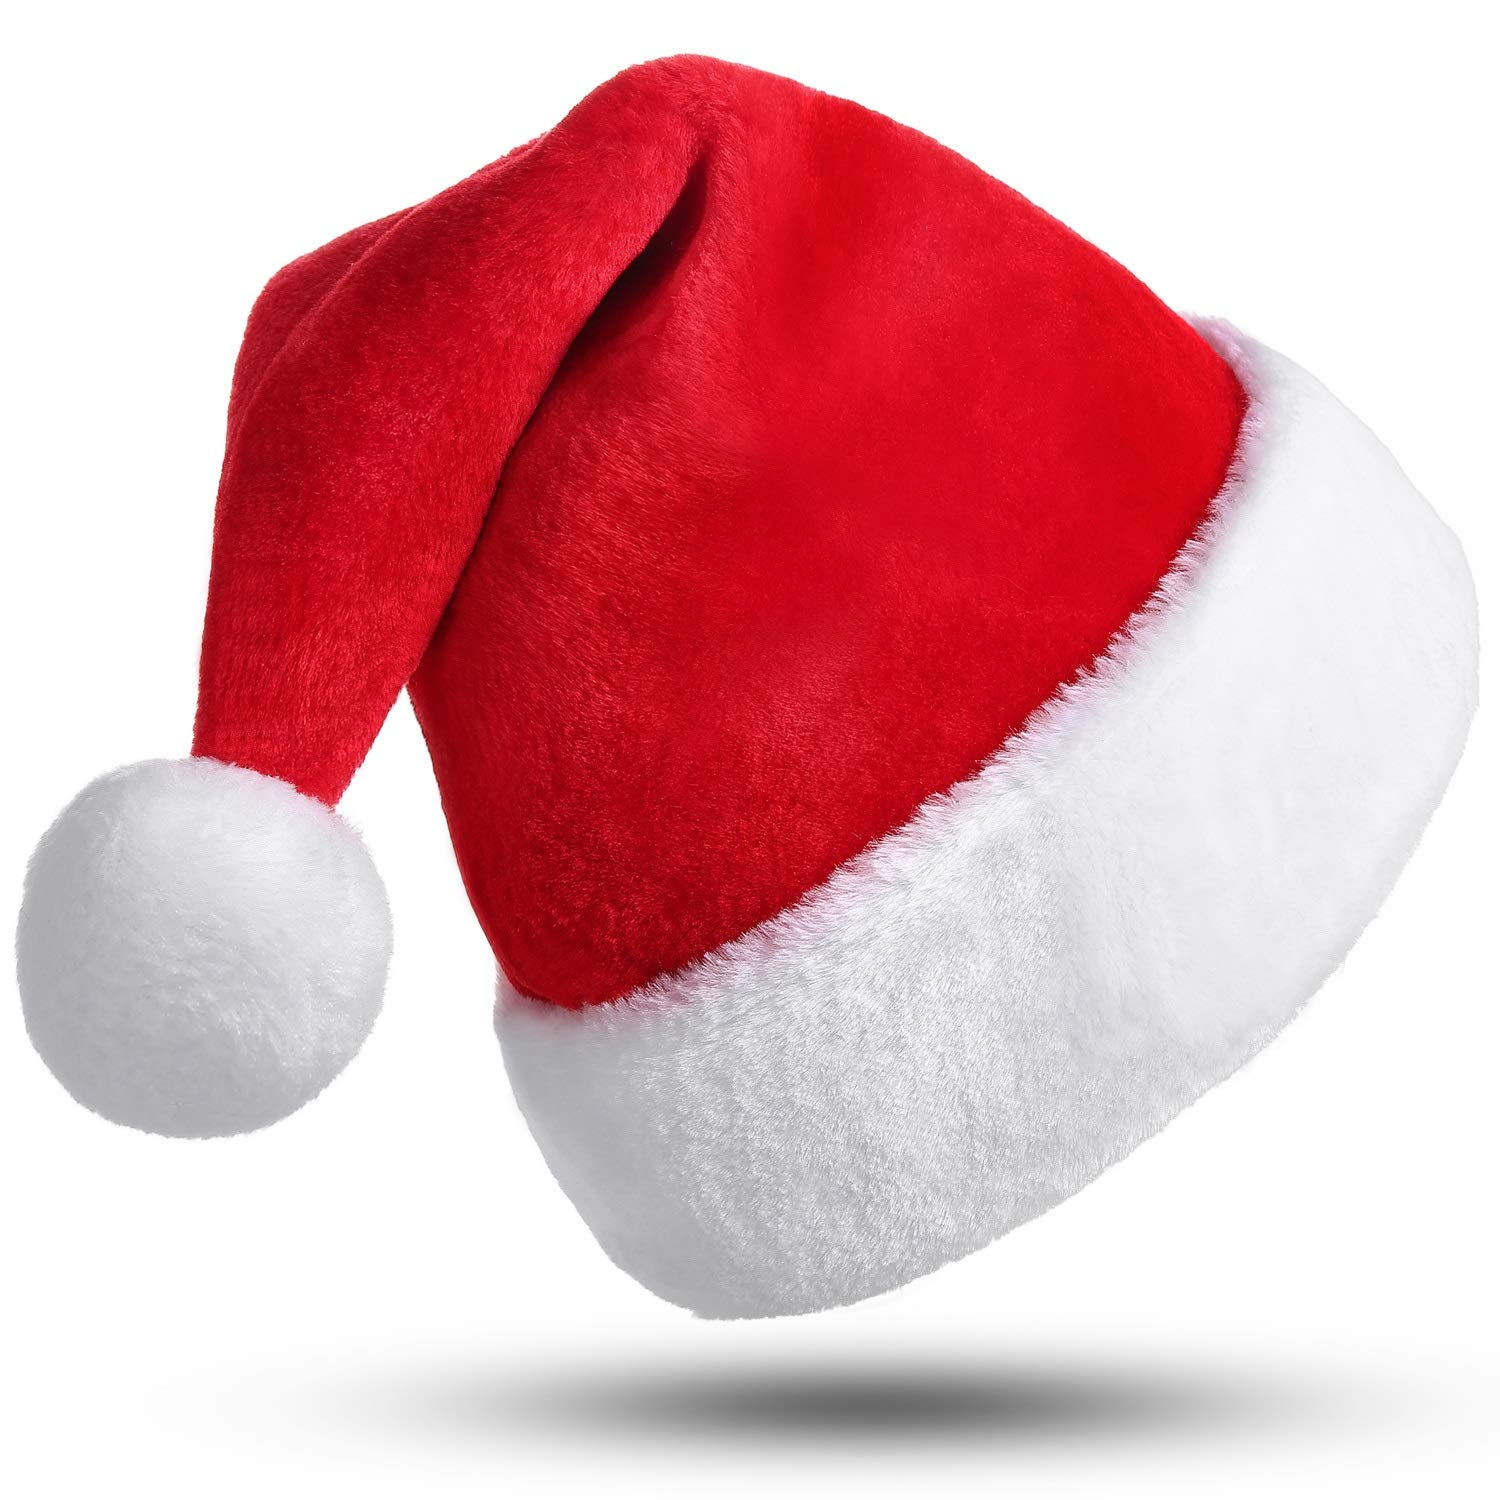 3adfe9aaf8dde Amazon.com  Phyxin Santa Hat Christmas Hat Christmas Luxury Plush Hat  Classic Christmas Santa Claus Cap for Unisex Adult Xmas Caps Decoration   Toys   Games